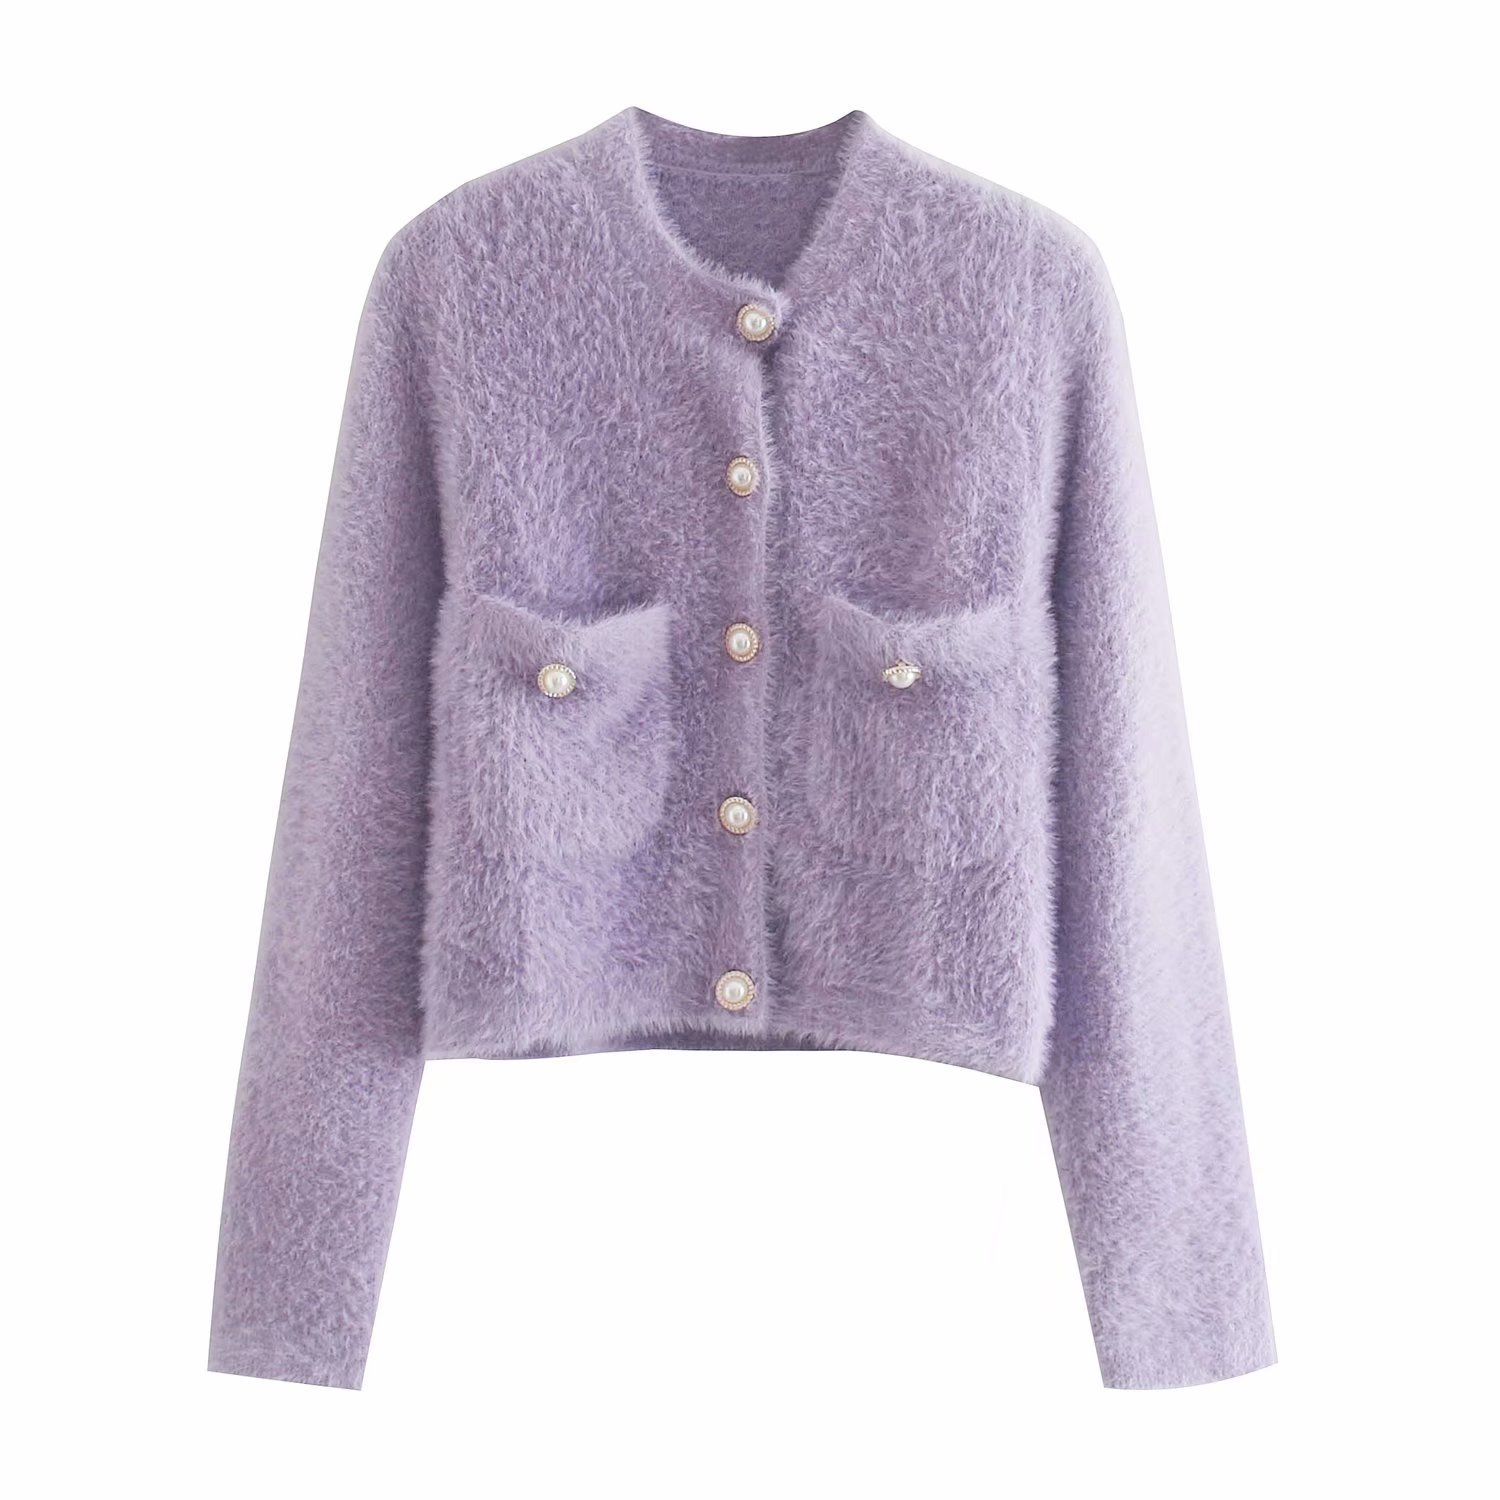 winter new women's pearl buckle long-sleeved soft waxy plush thick knitted jacket  NSAM2289